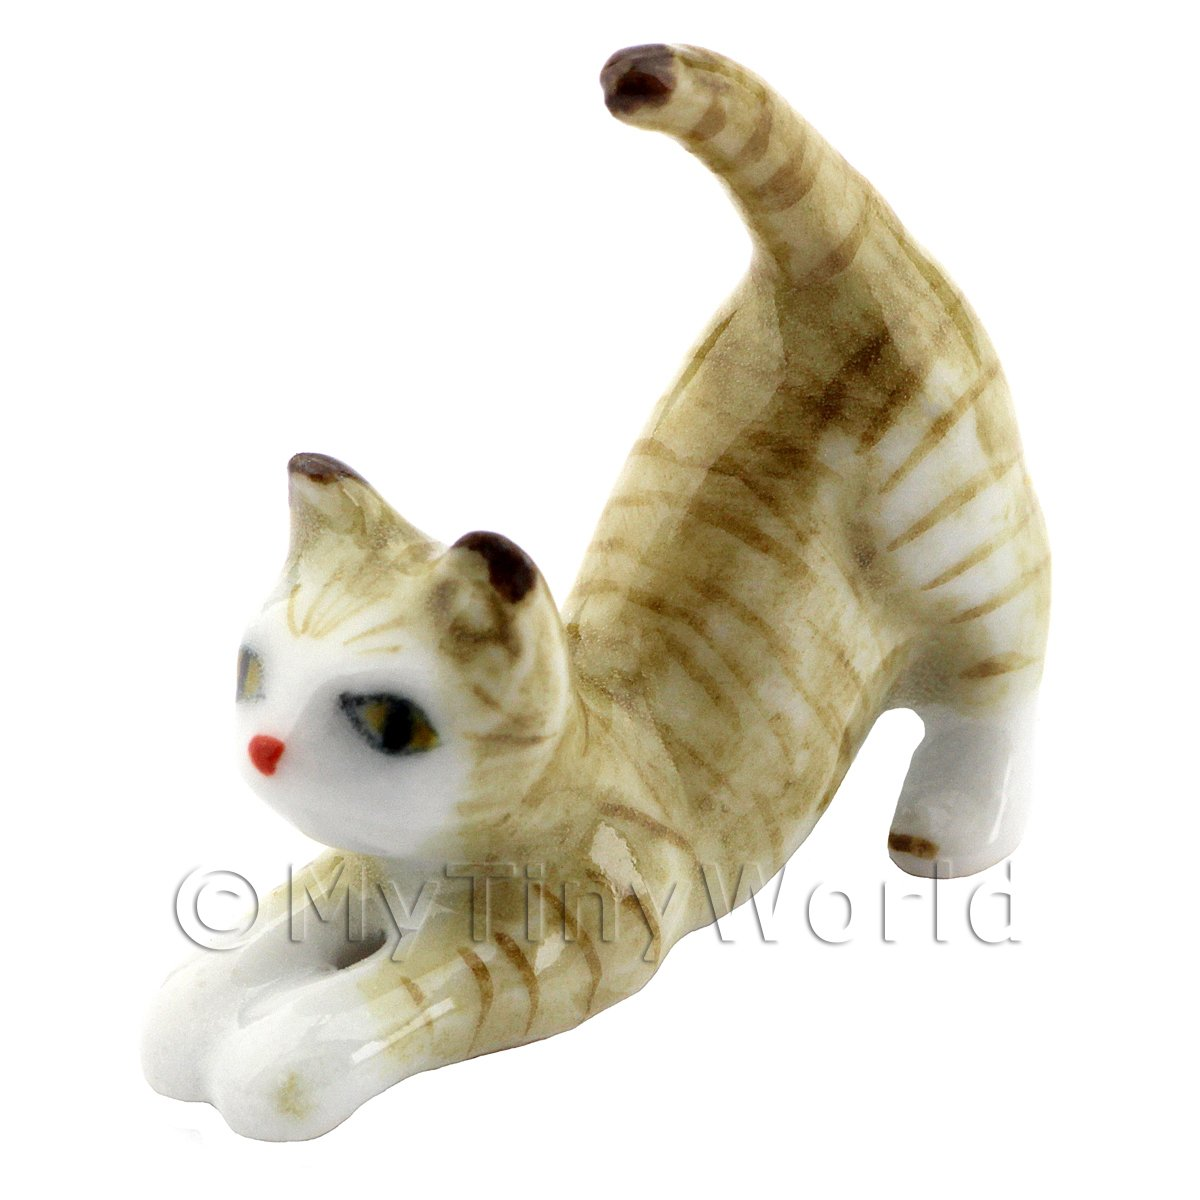 Dolls House Miniature Ceramic Brown and White Tabby Cat Stretching